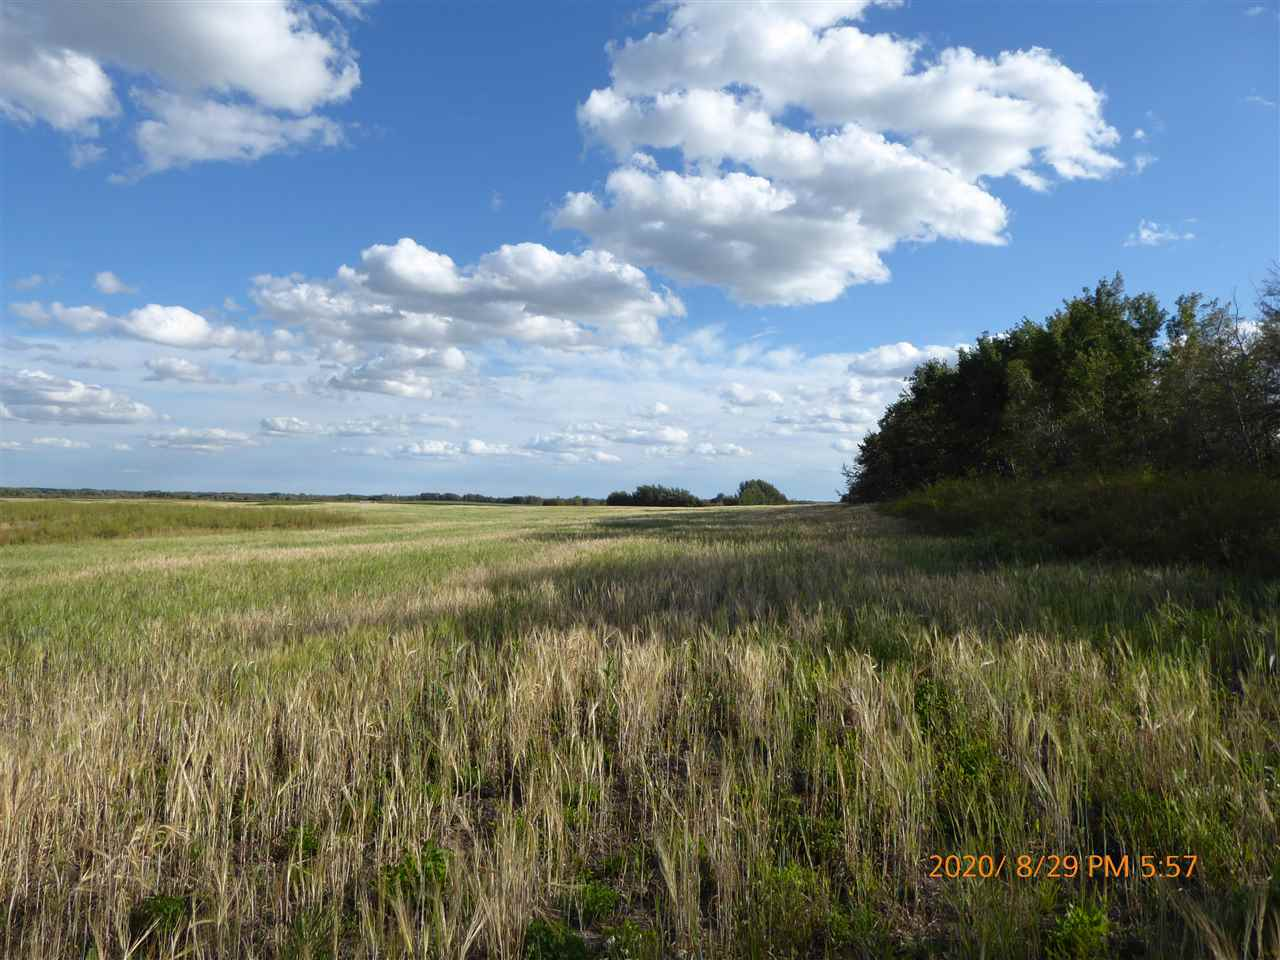 **Back of the market and priced to sell @ $104,900.** 20.03 Acres of land close to Tofield, Alberta, just 28 minutes East of Edmonton & Sherwood Park, located i mile off of Highway #14. This is a triangular shaped parcel, mostly cultivated acres - secluded area with trees lining the West side and bordering on the Railroad tracks on the North side. Not in Sub-Division. Power & Gas at the property line. **N.B. GST may be applicable on Purchase*.**